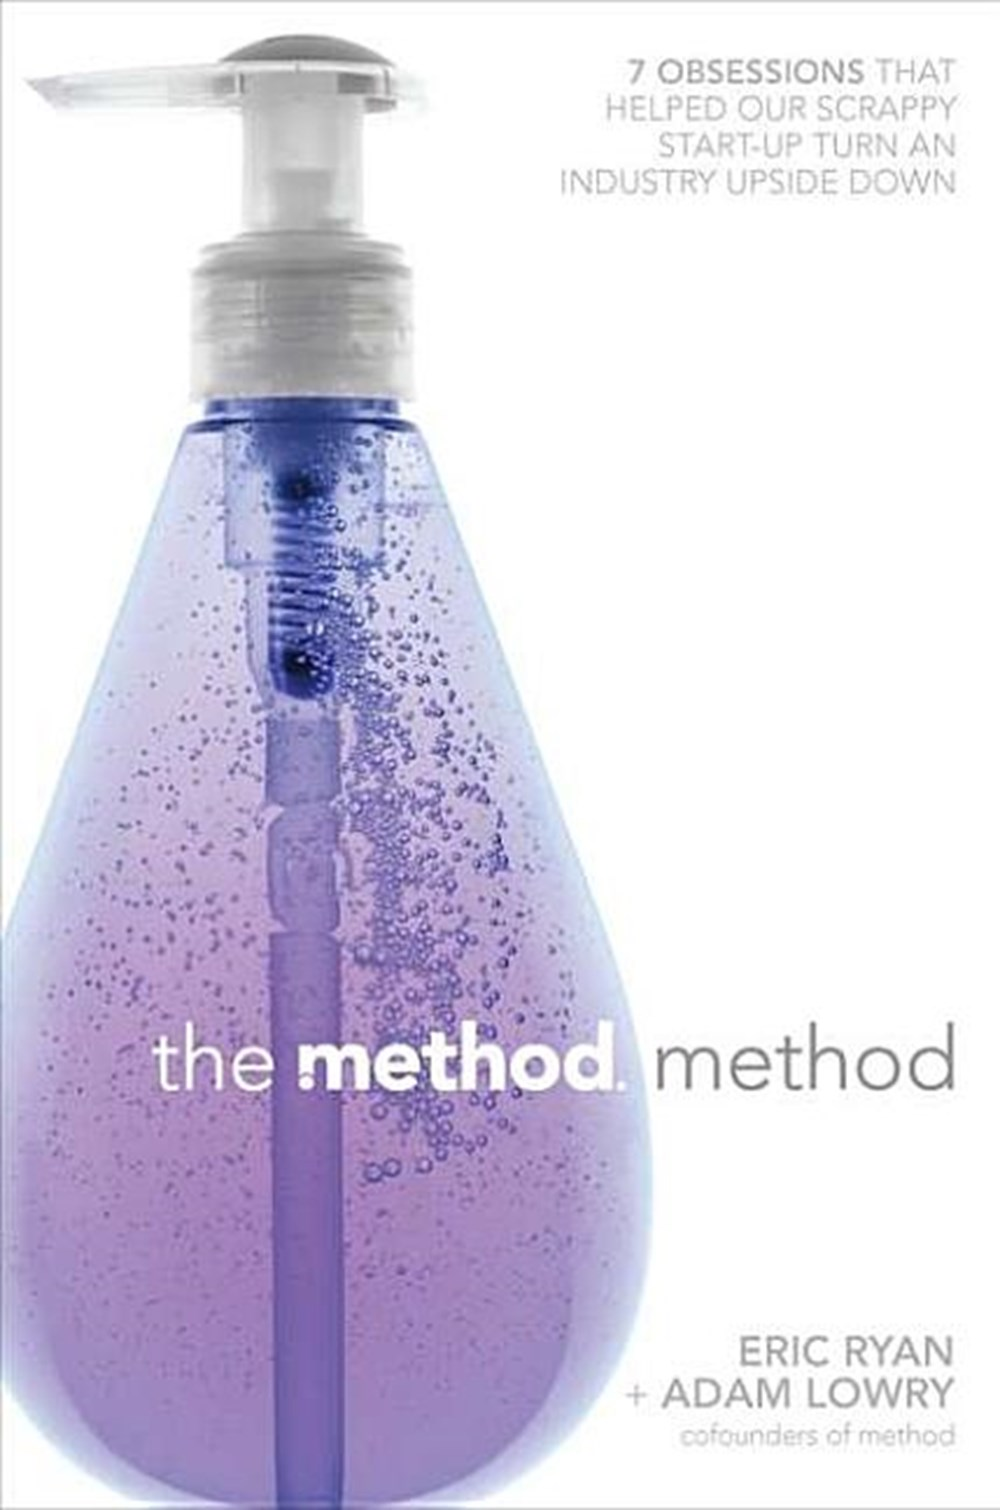 Method Method Seven Obsessions That Helped Our Scrappy Start-Up Turn an Industry Upside Down